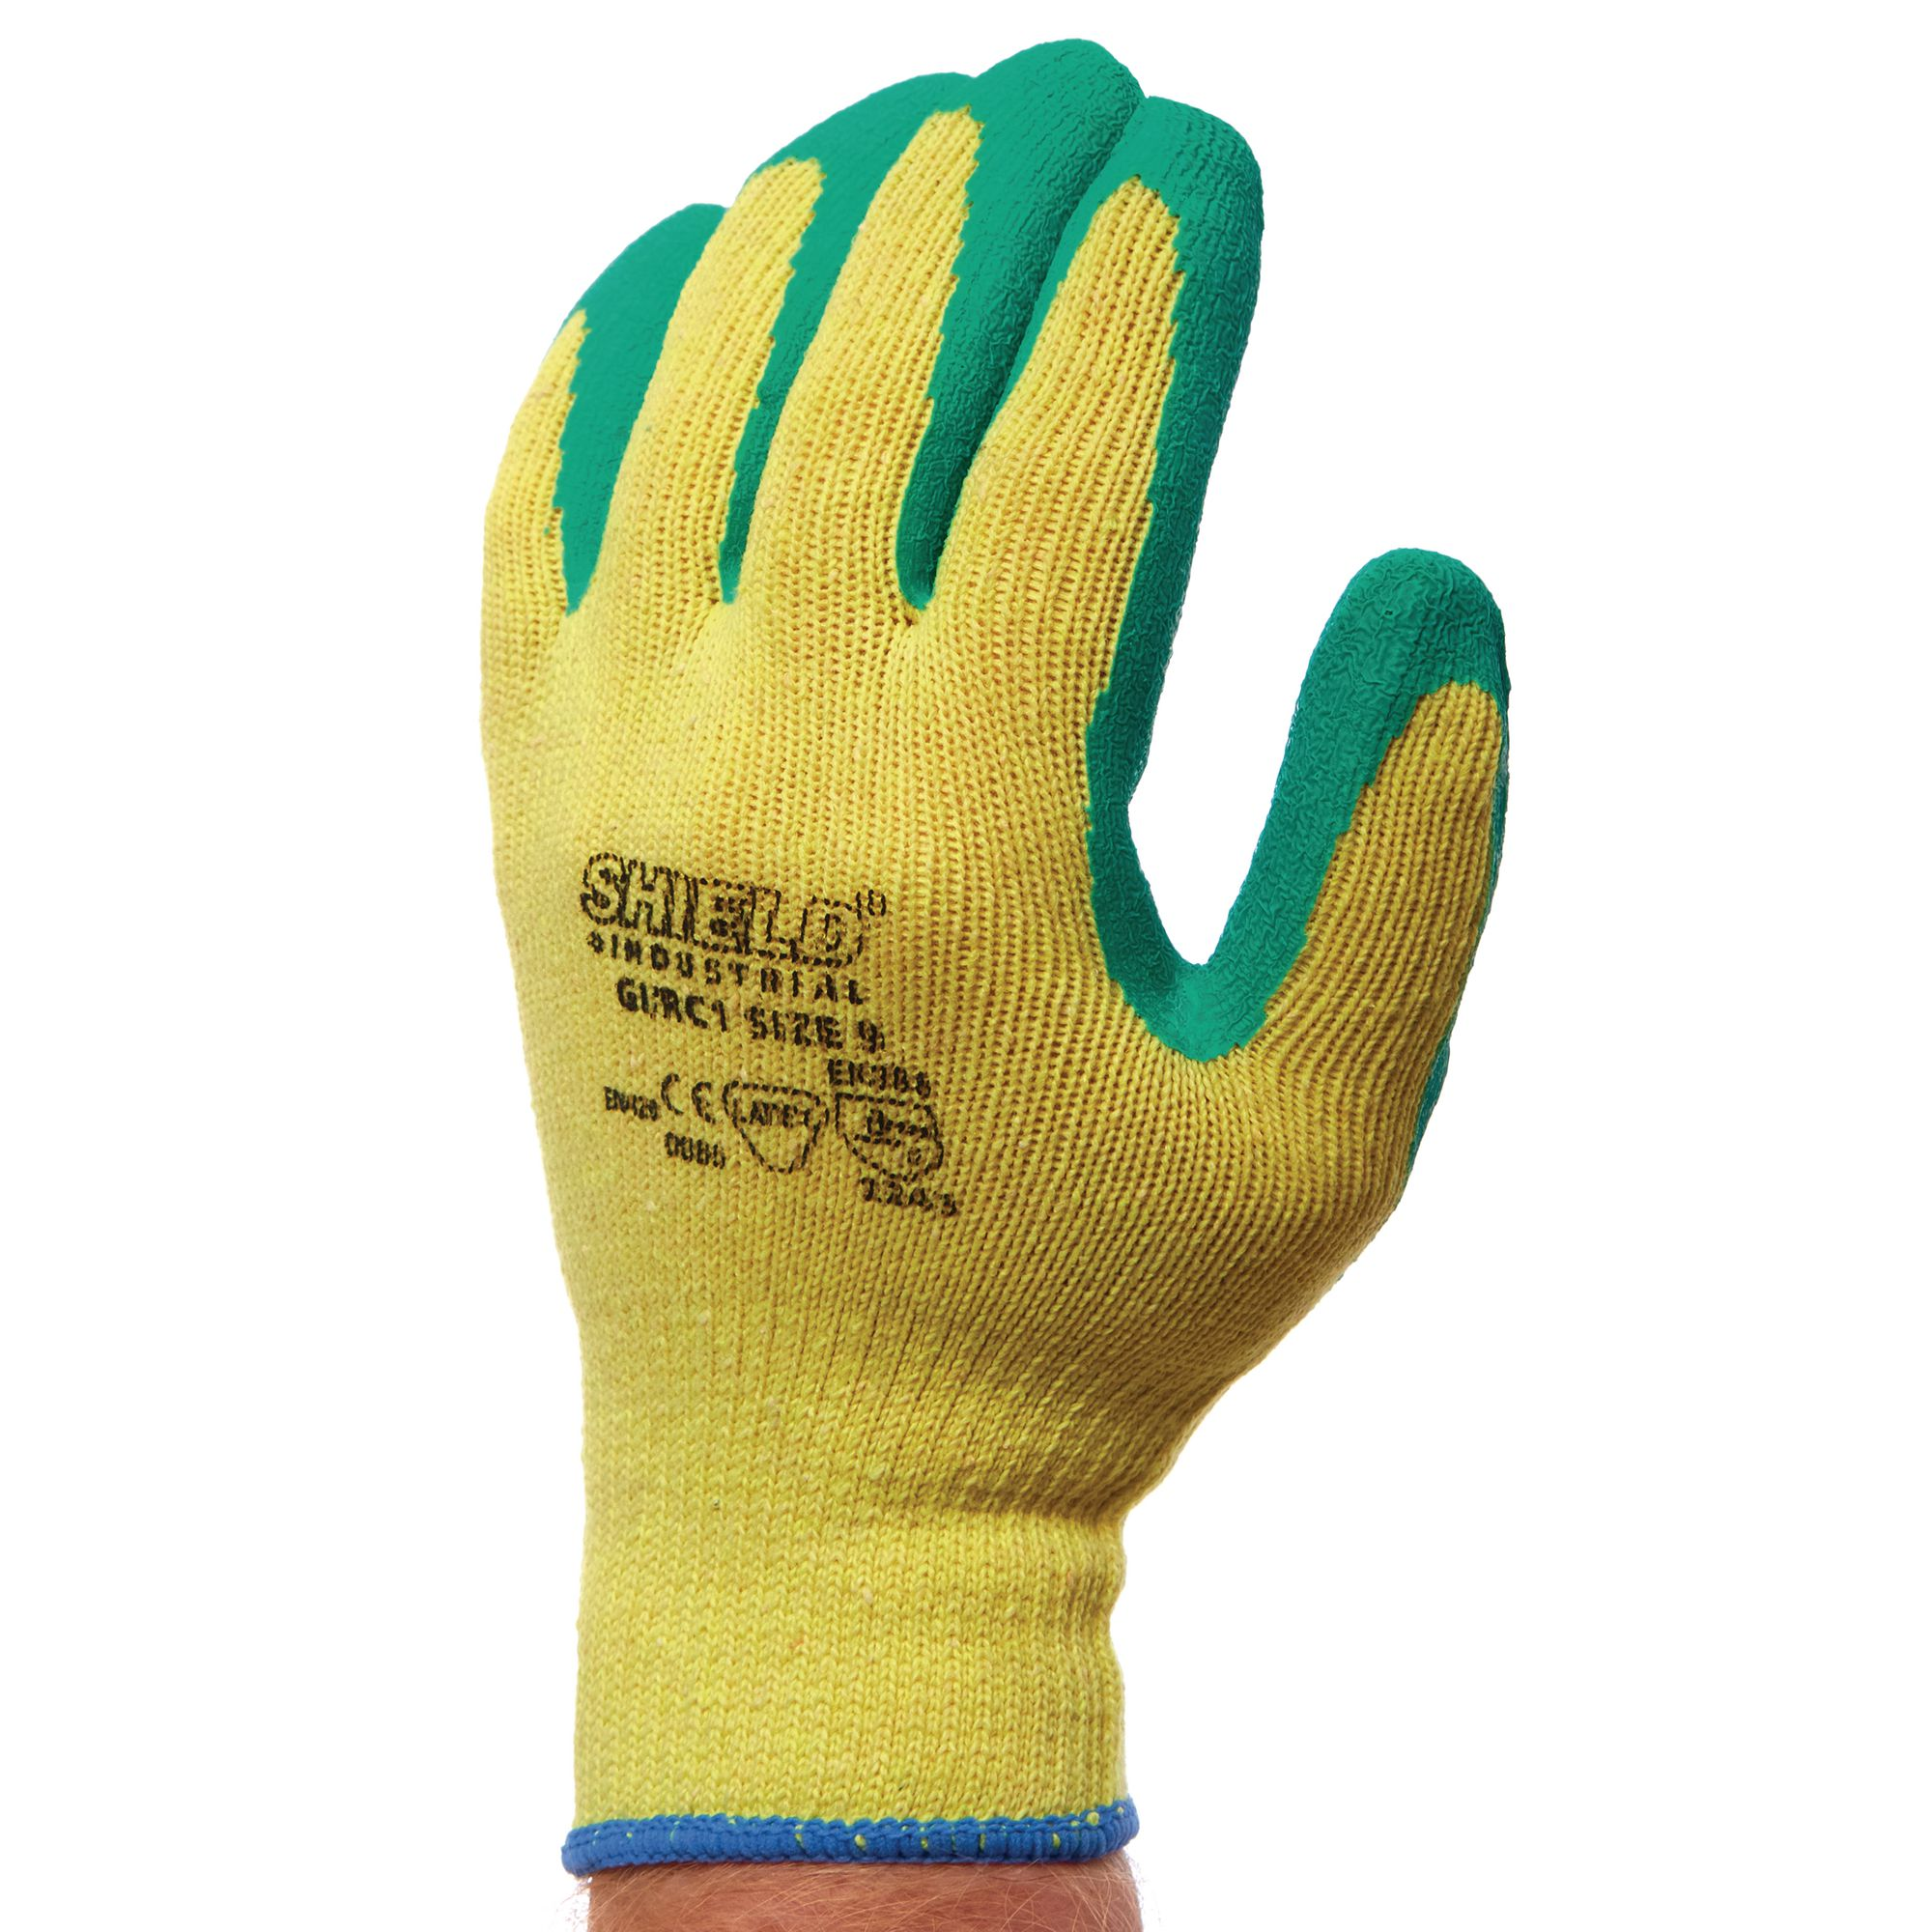 Medium Green Gardening Gloves Pair Gls Educational